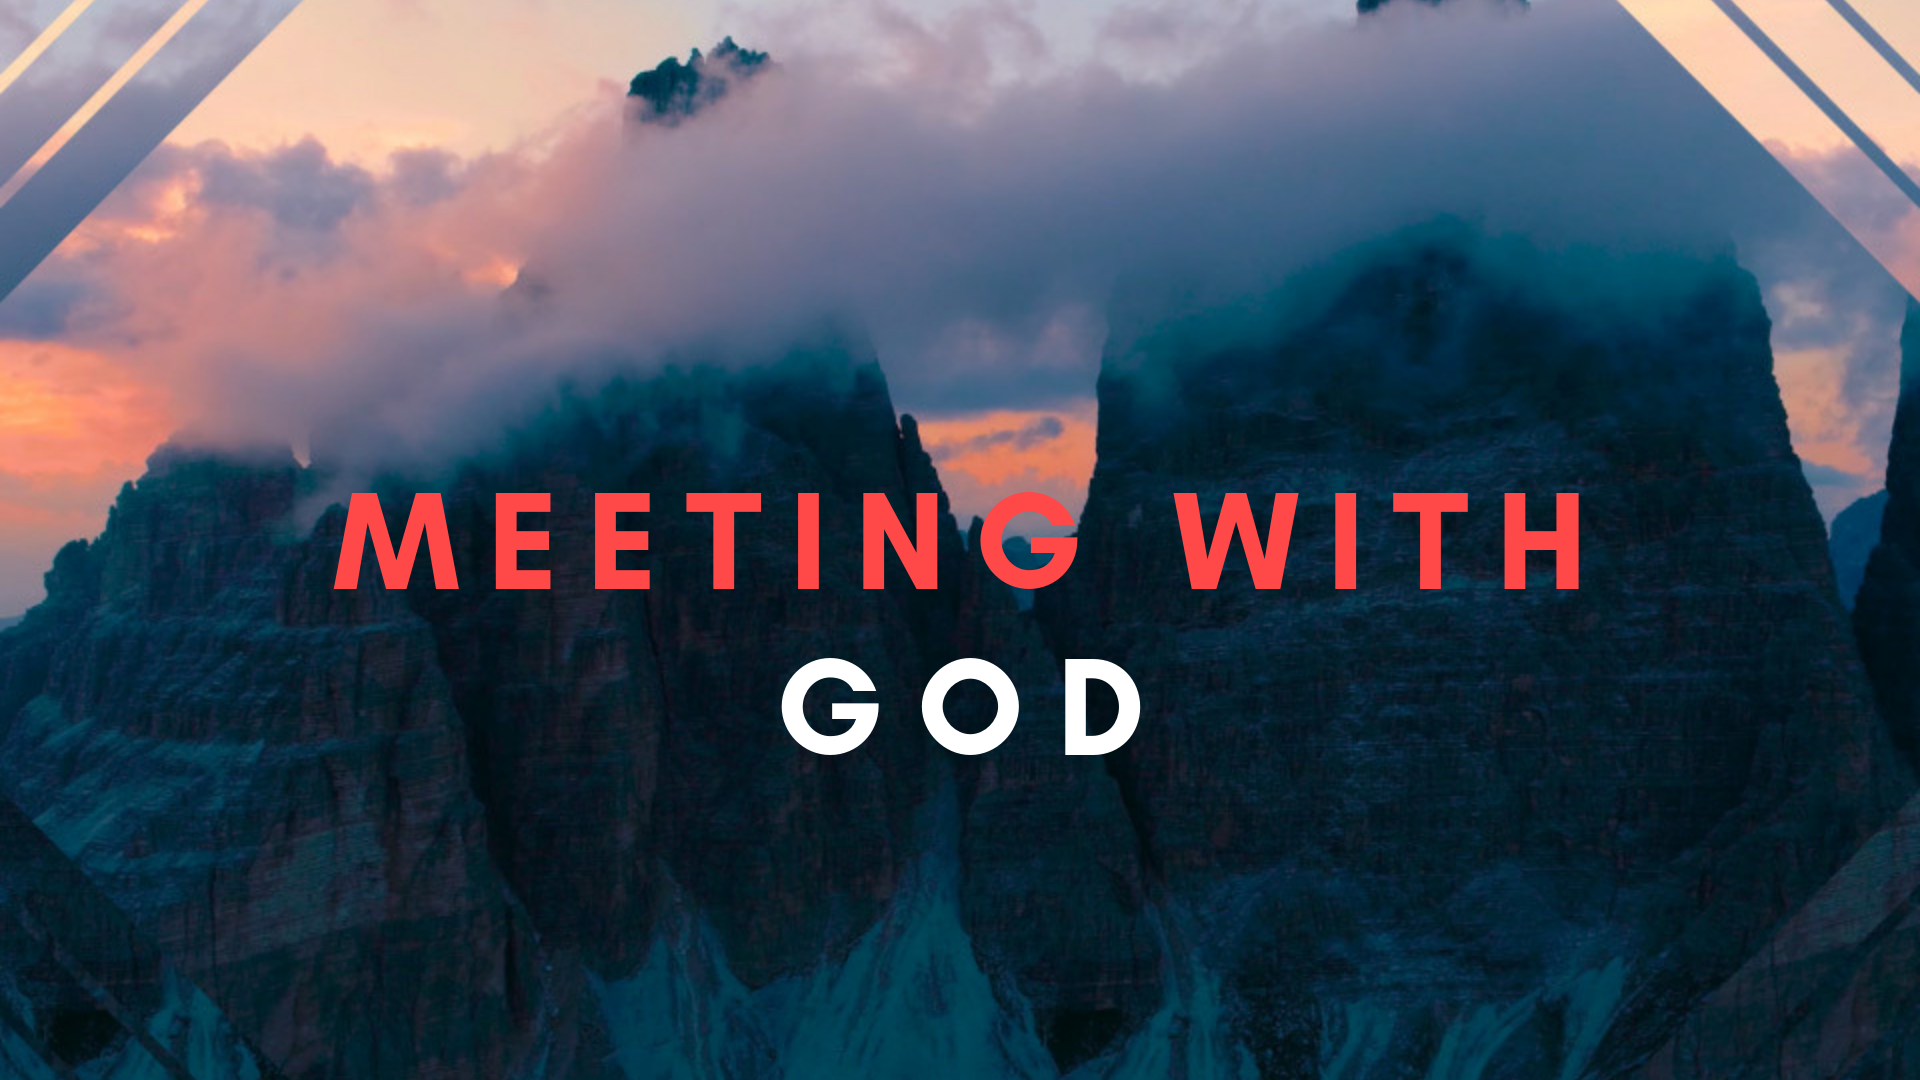 Meeting with God when you're overwhelmed